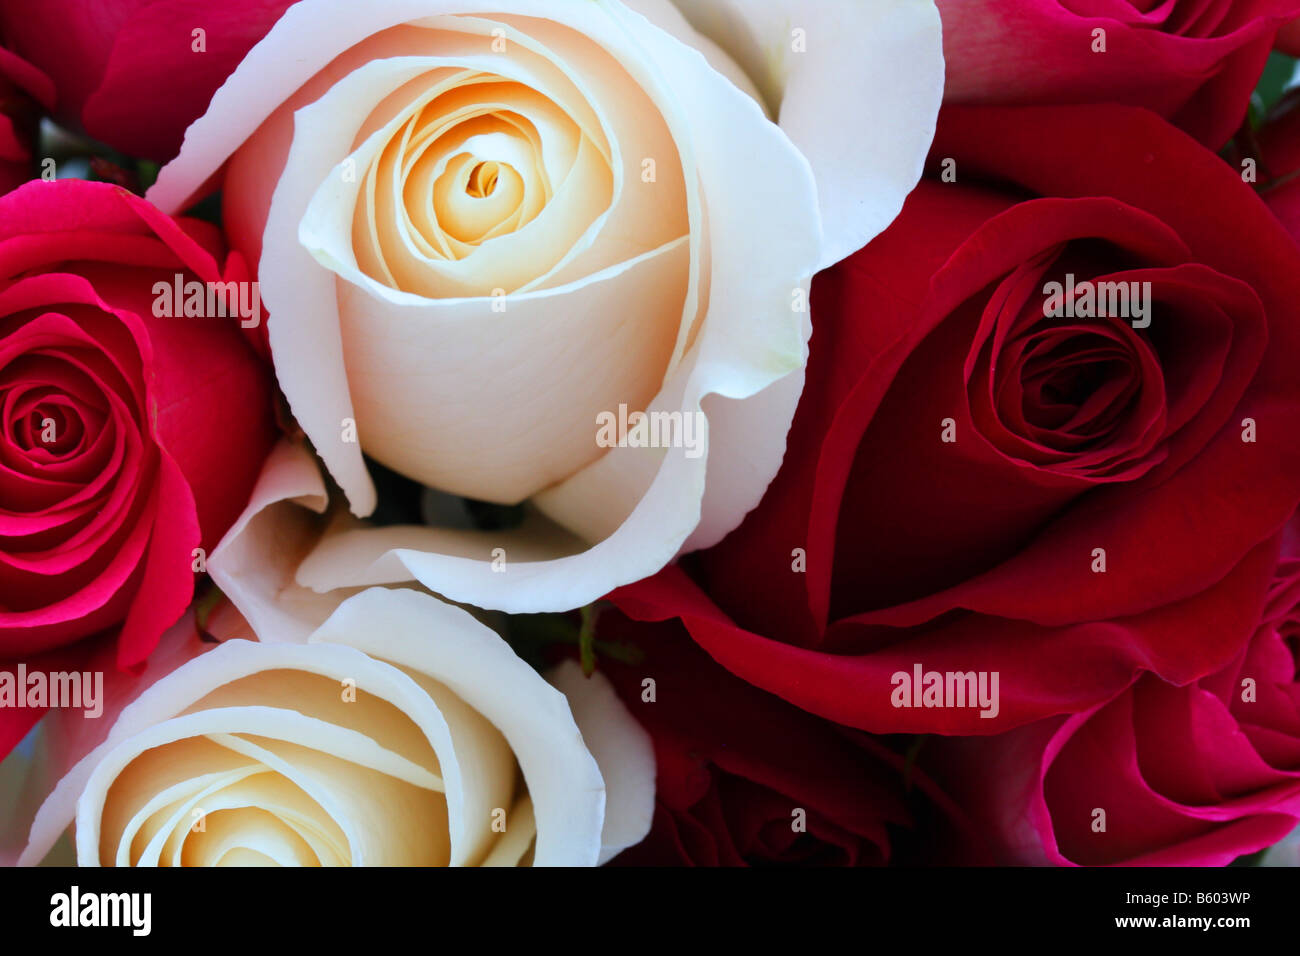 Stock Photo Of A Beautiful Bunch Of Red And White Roses Stock Photo